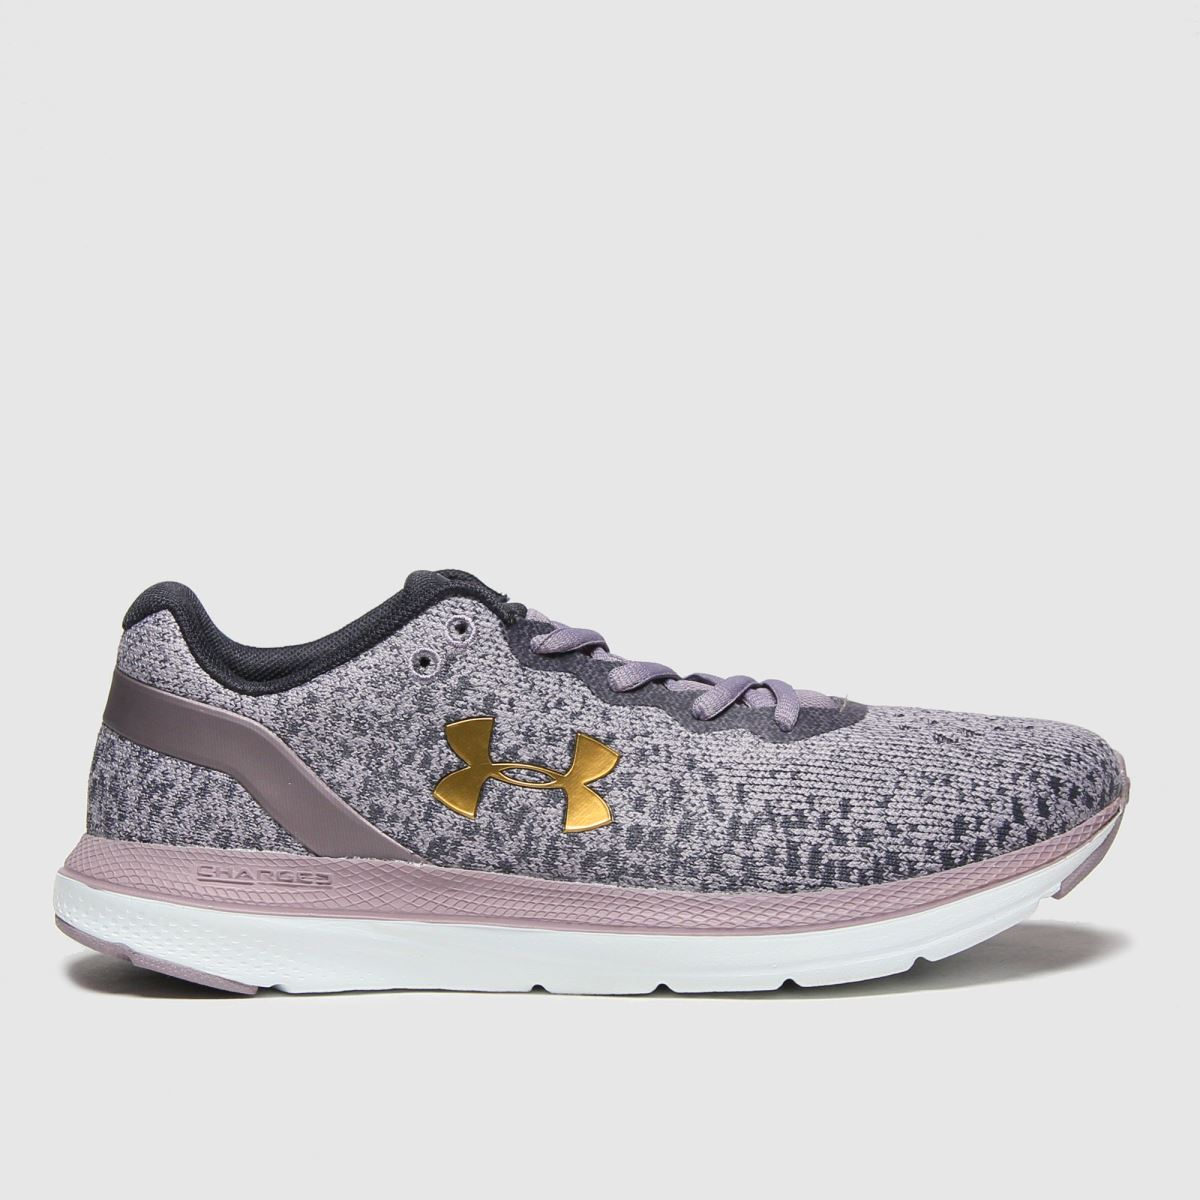 Under Armour Black & Purple Charged Impulse Trainers